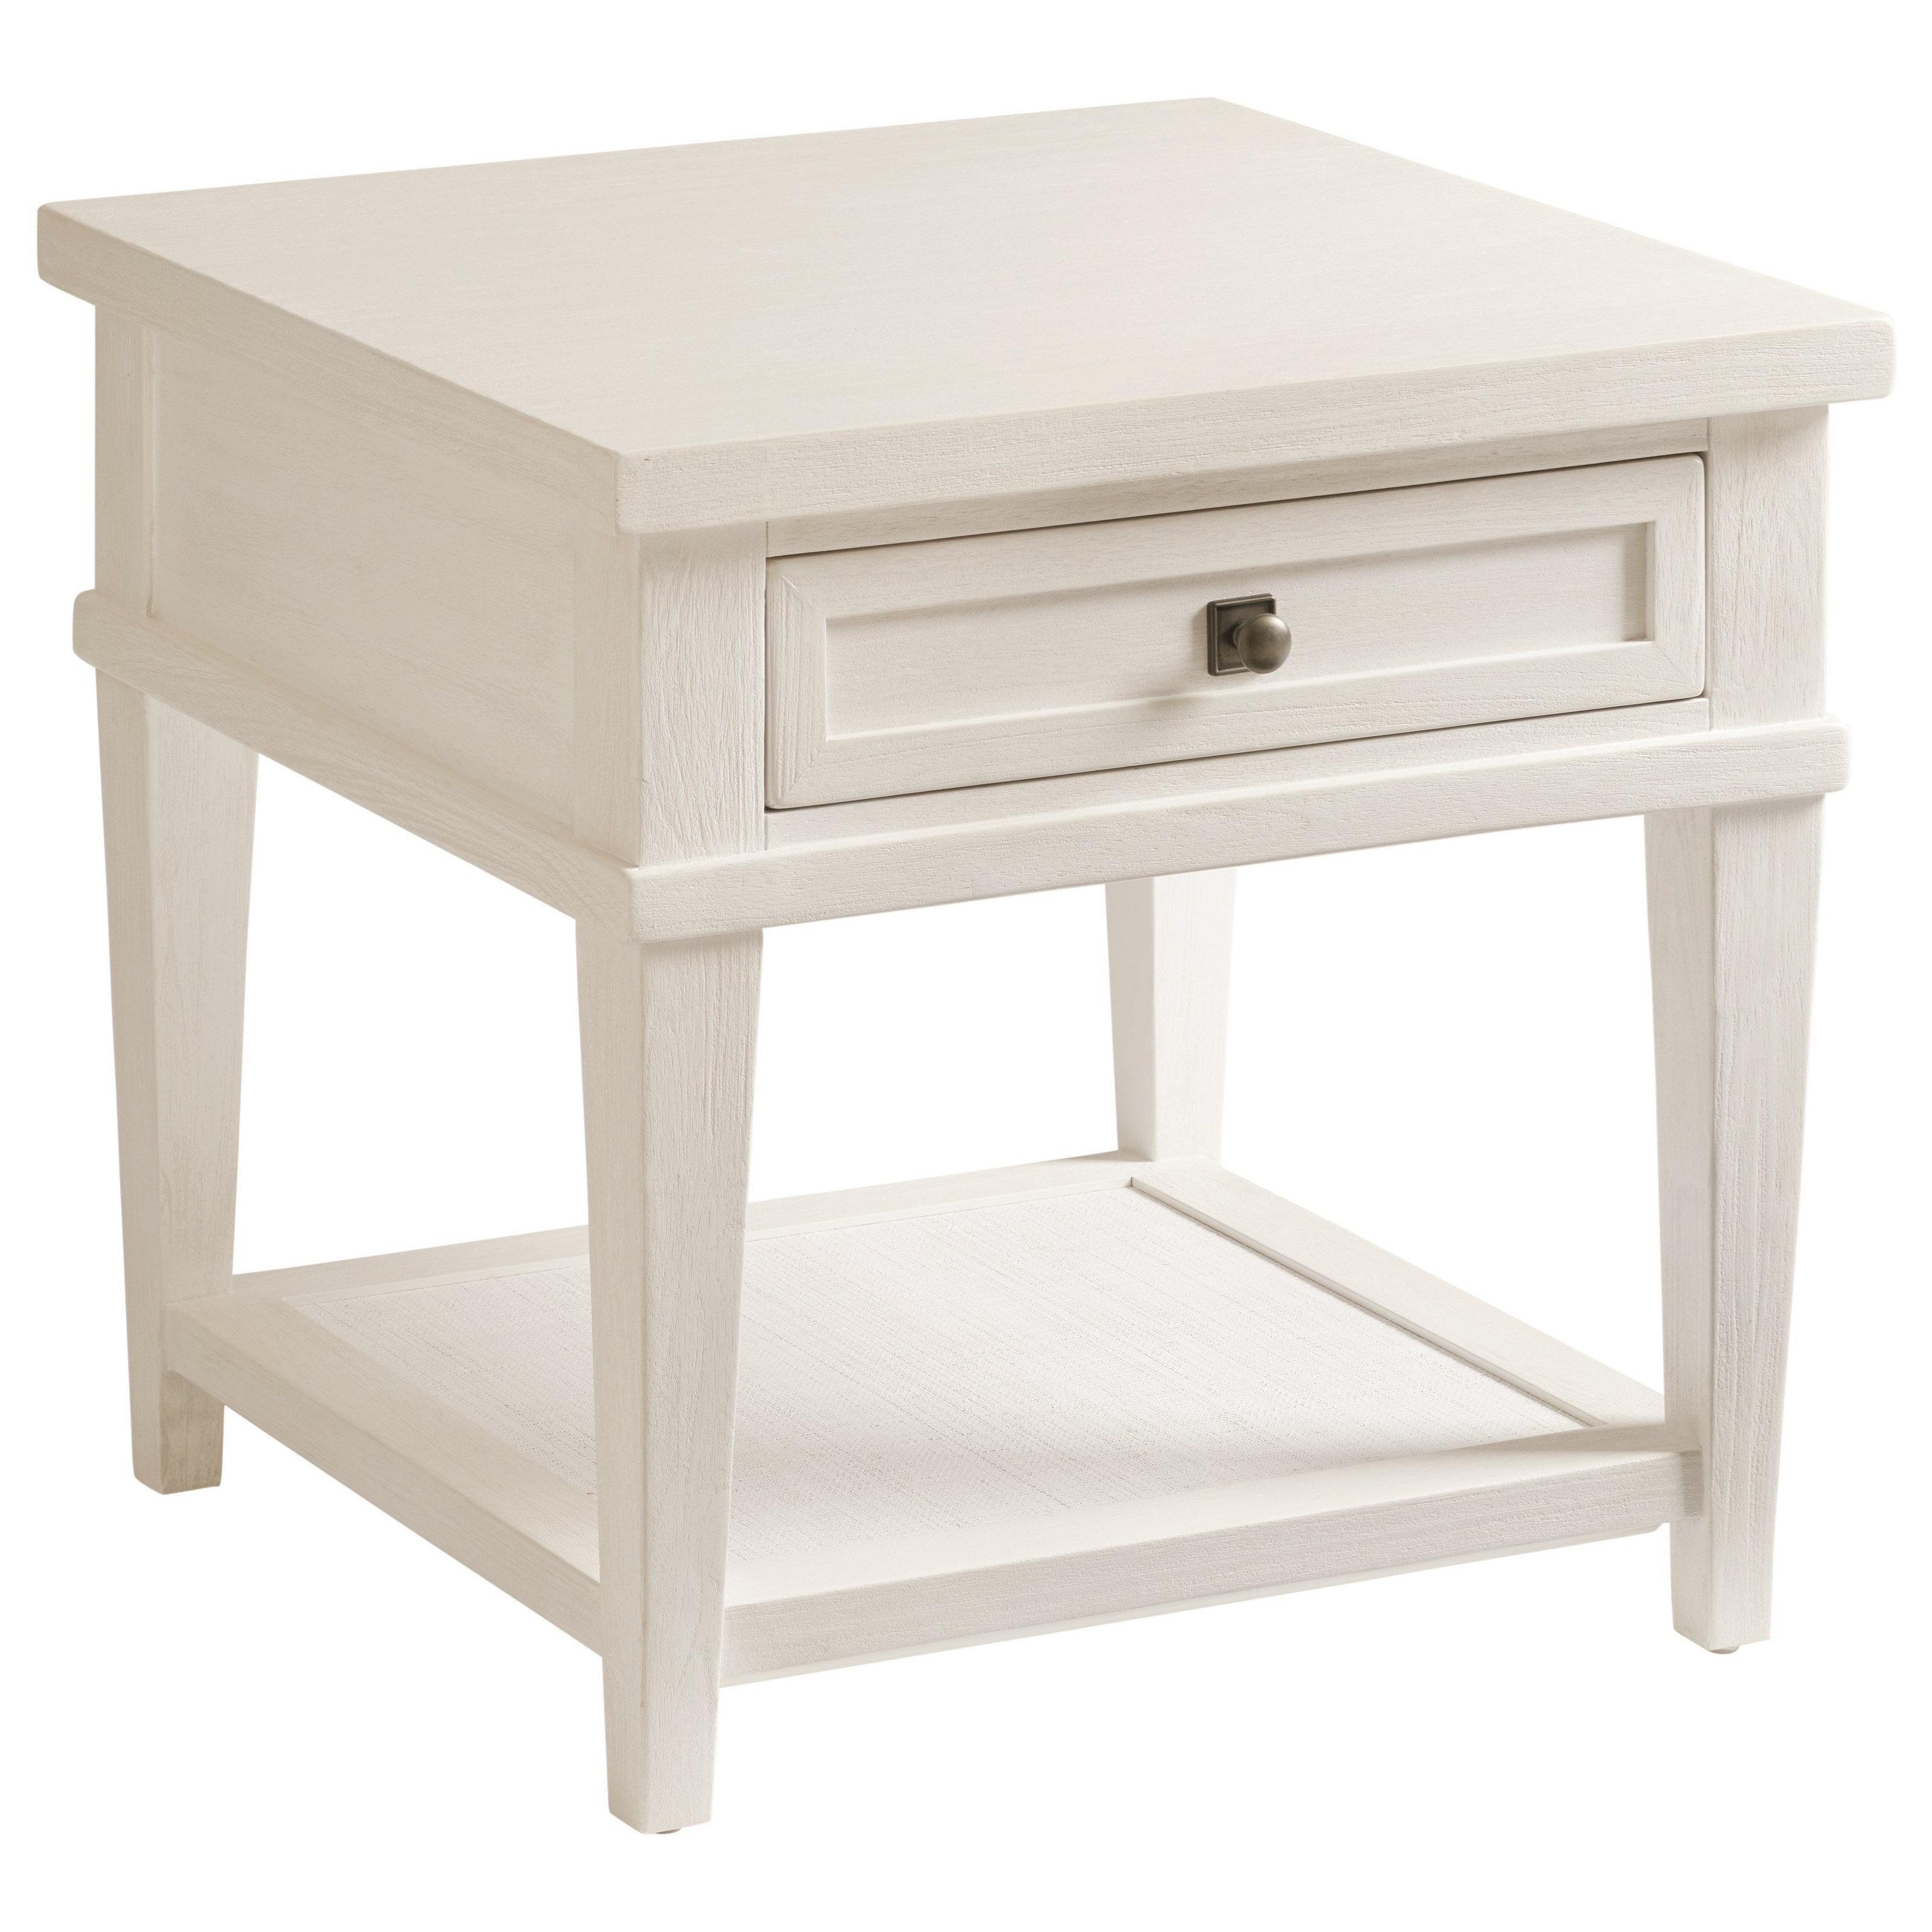 Ocean Breeze Palm Coast Square End Table by Tommy Bahama Home at Baer's Furniture